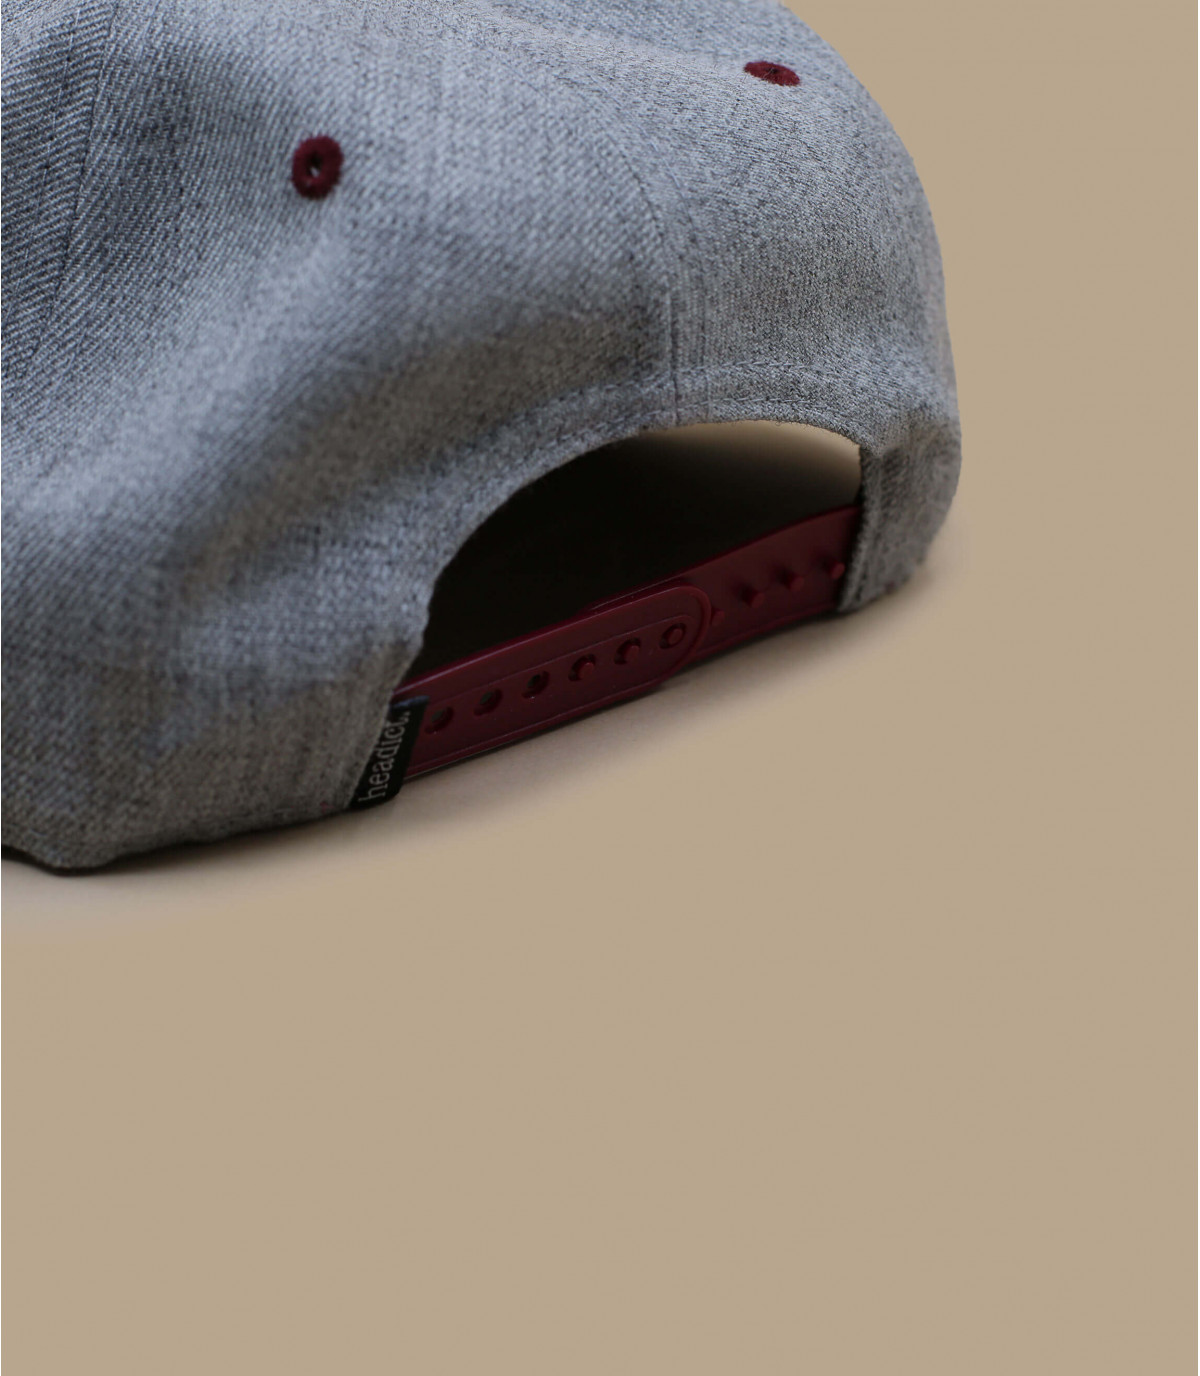 Détails Snapback First Come First Track grey burgundy - image 4